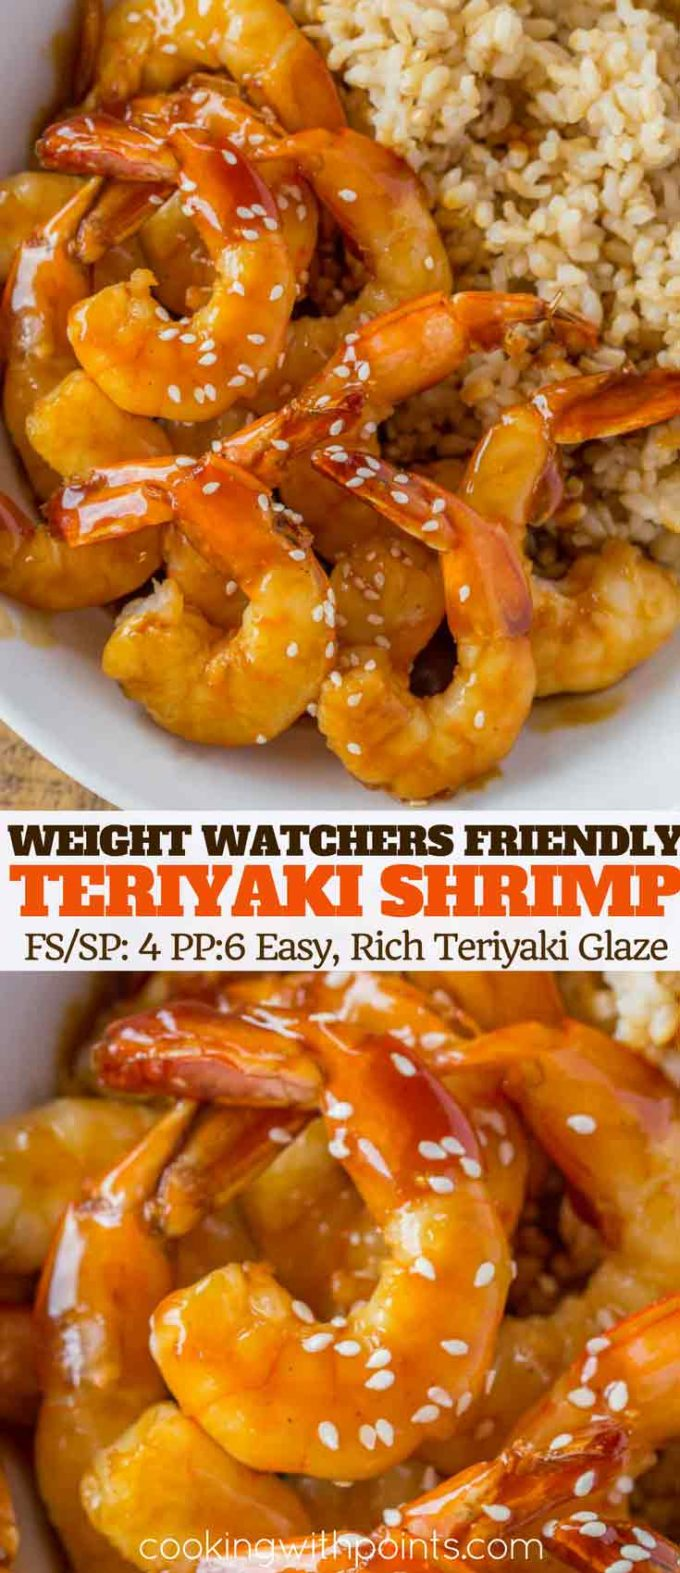 Skinny Teriyaki Shrimp